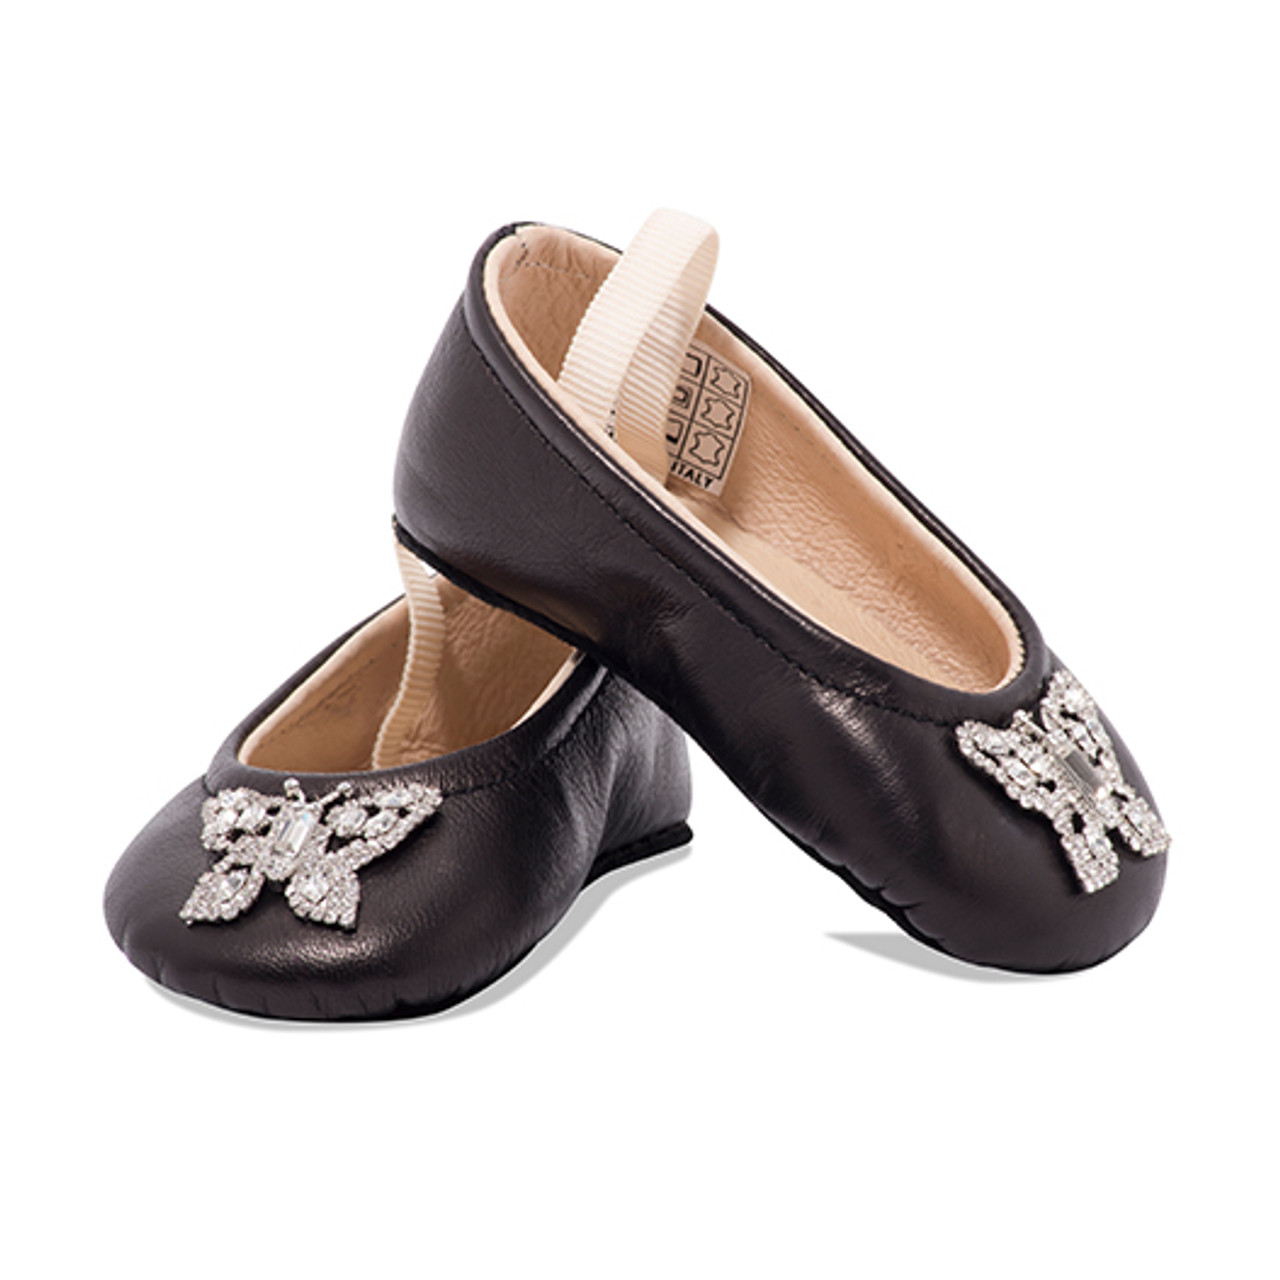 Odette Black Leather Baby Shoes